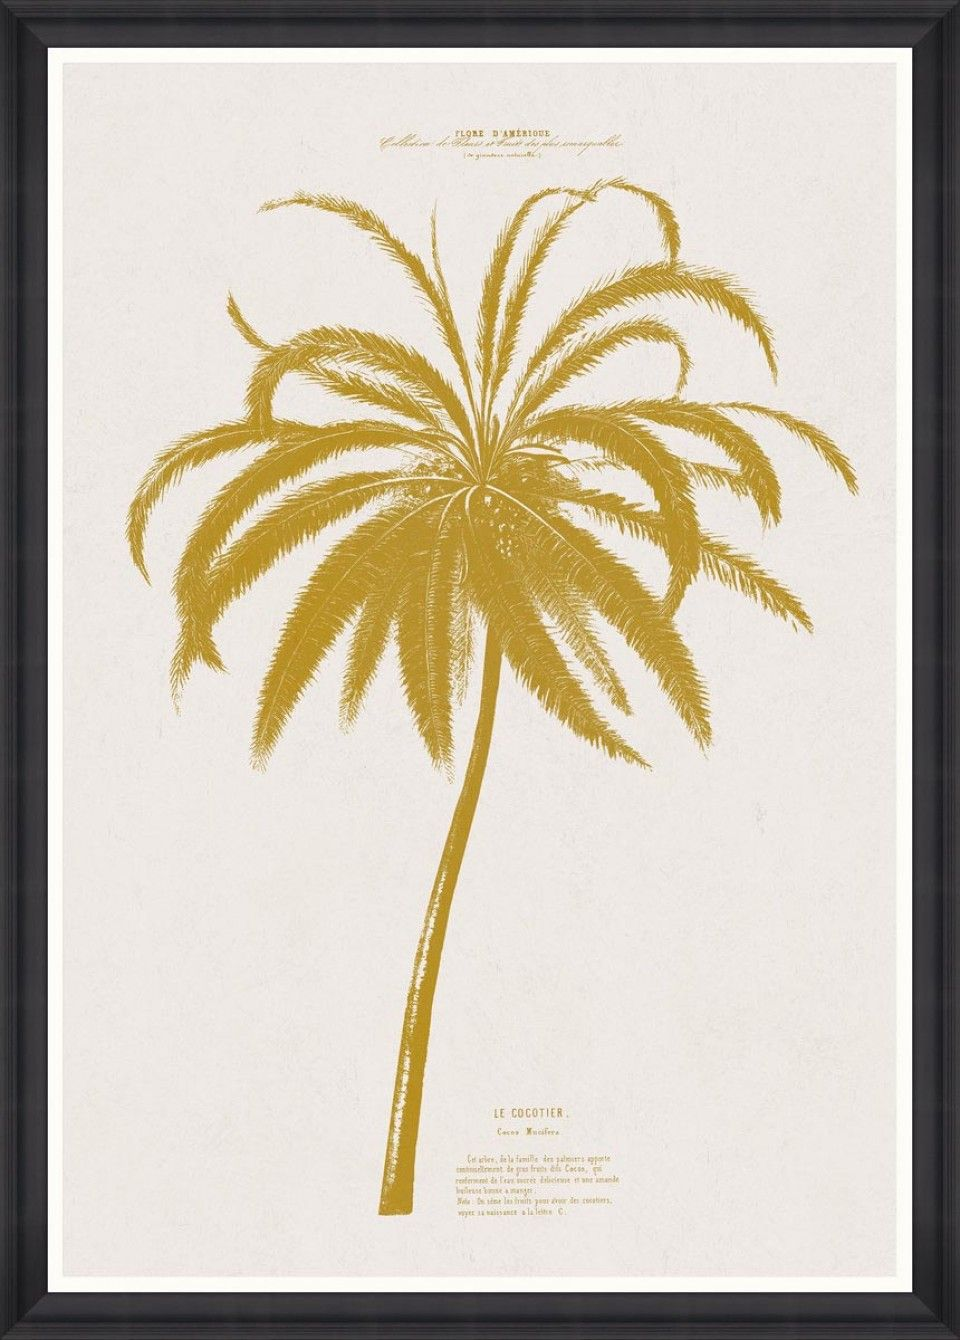 Add a tropical vibe to your walls with this quirky La Bananier ...